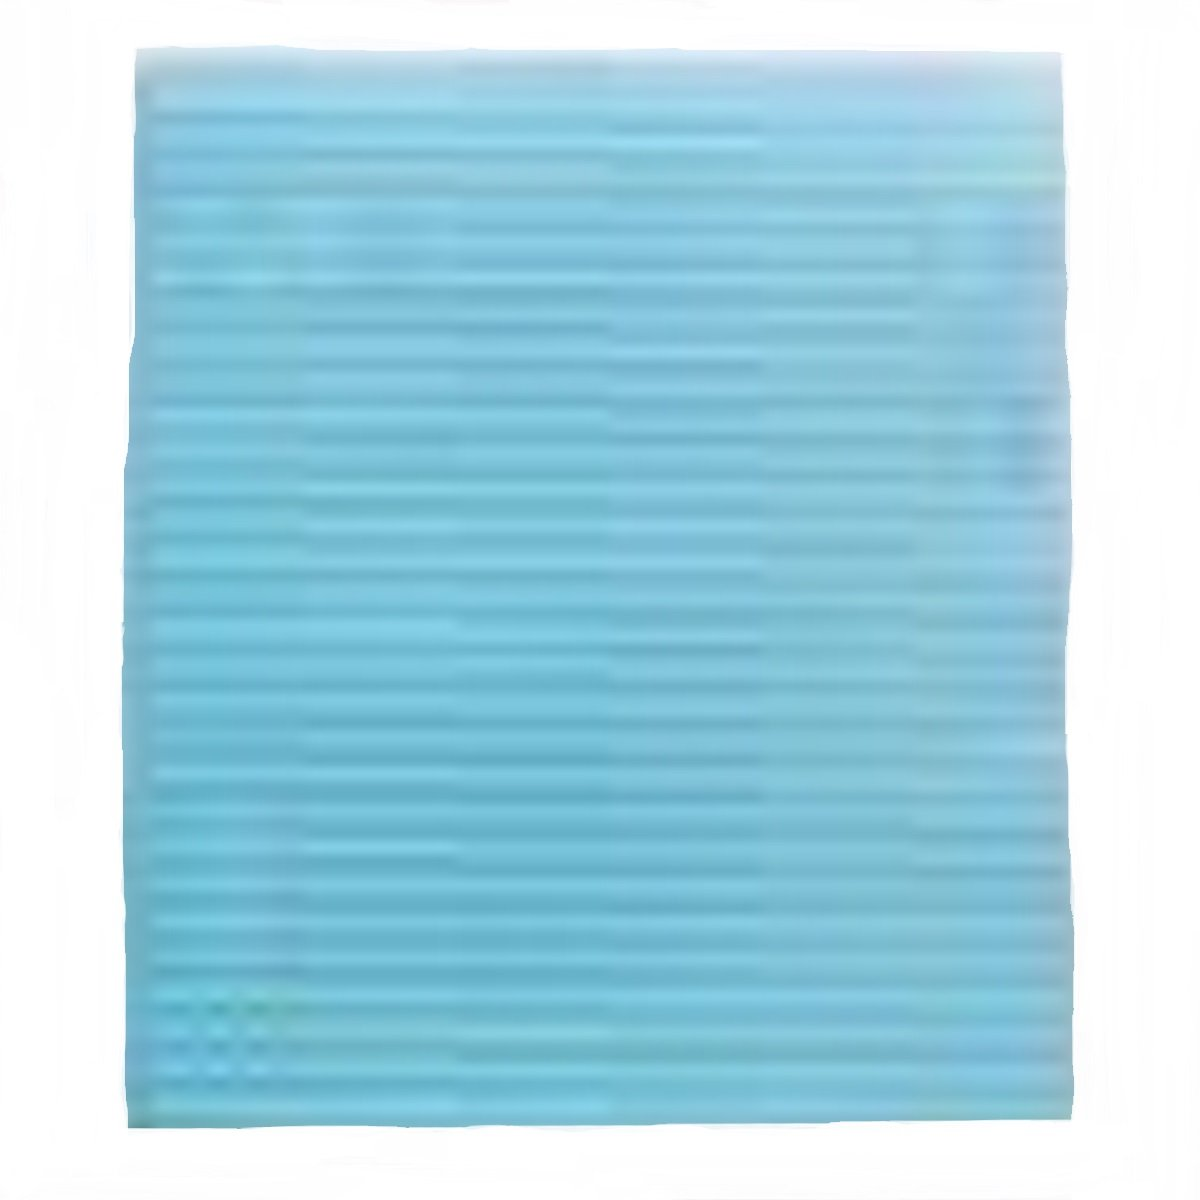 McKesson 18-867 Procedure Towel, 2-Ply/Poly, Blue, 13'' Width, 18'' Length (Pack of 500)